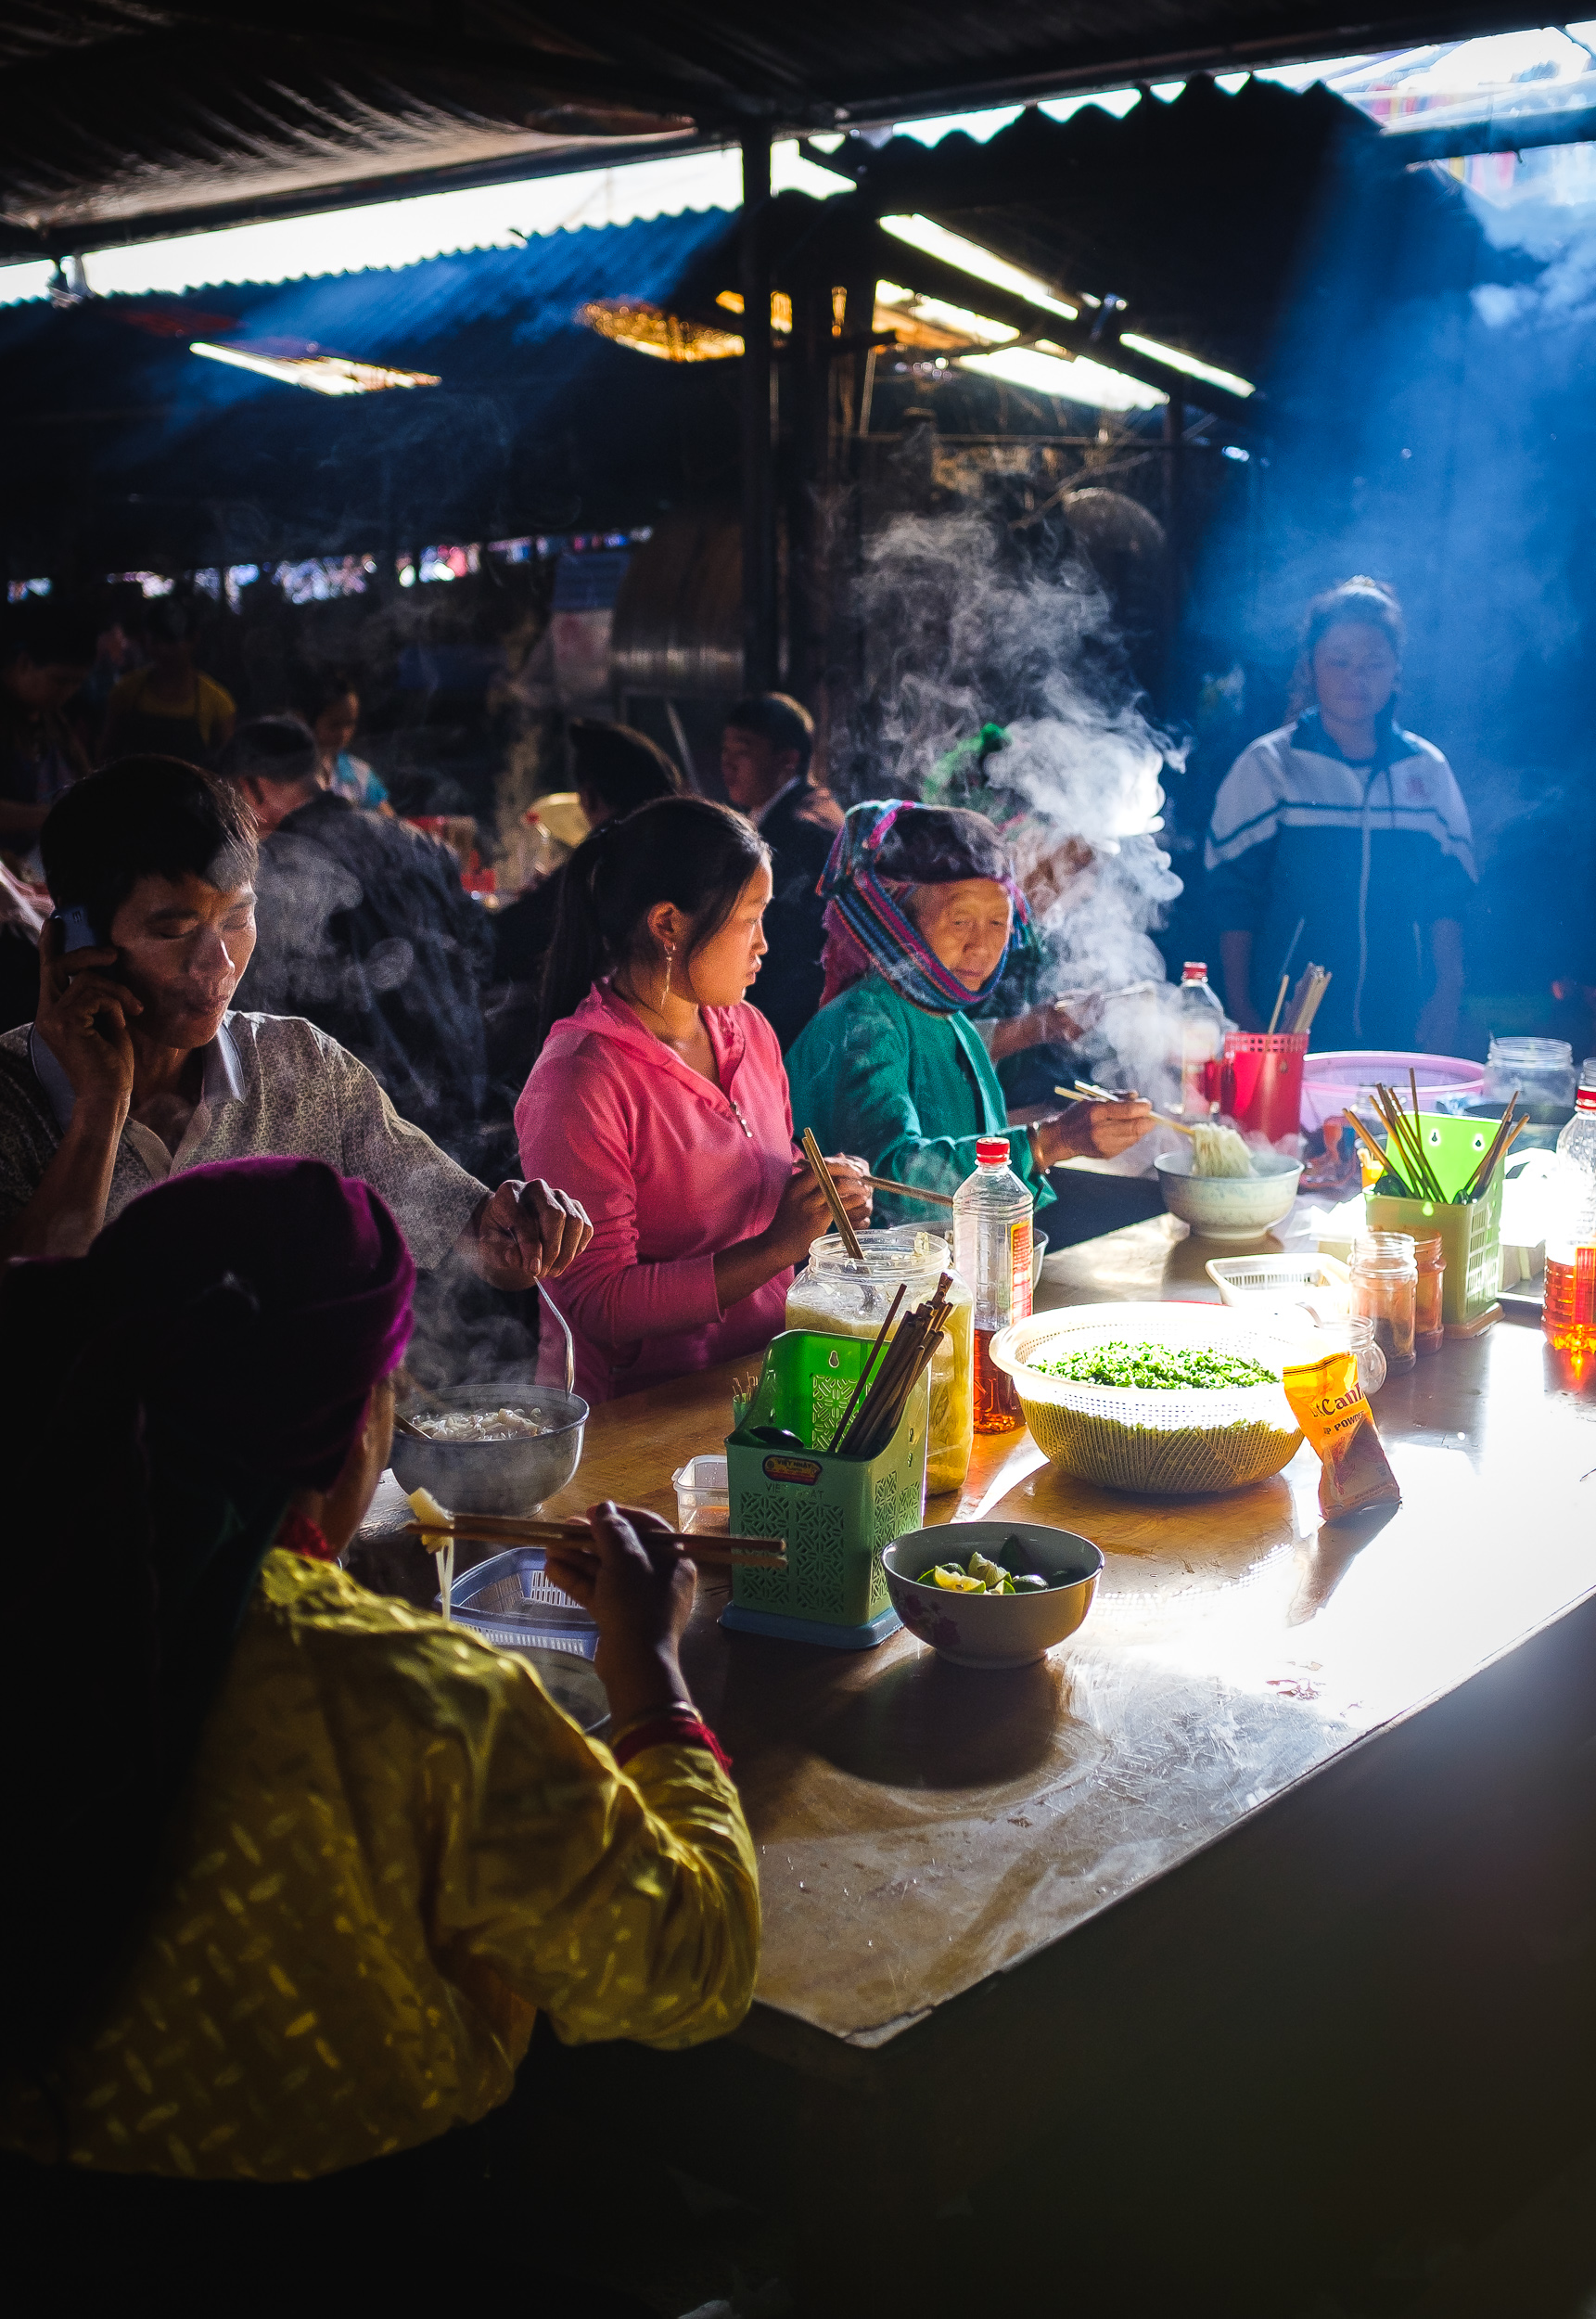 Visitors to the market having morning breakfast with Pho noodles in dong van market in Vietnam